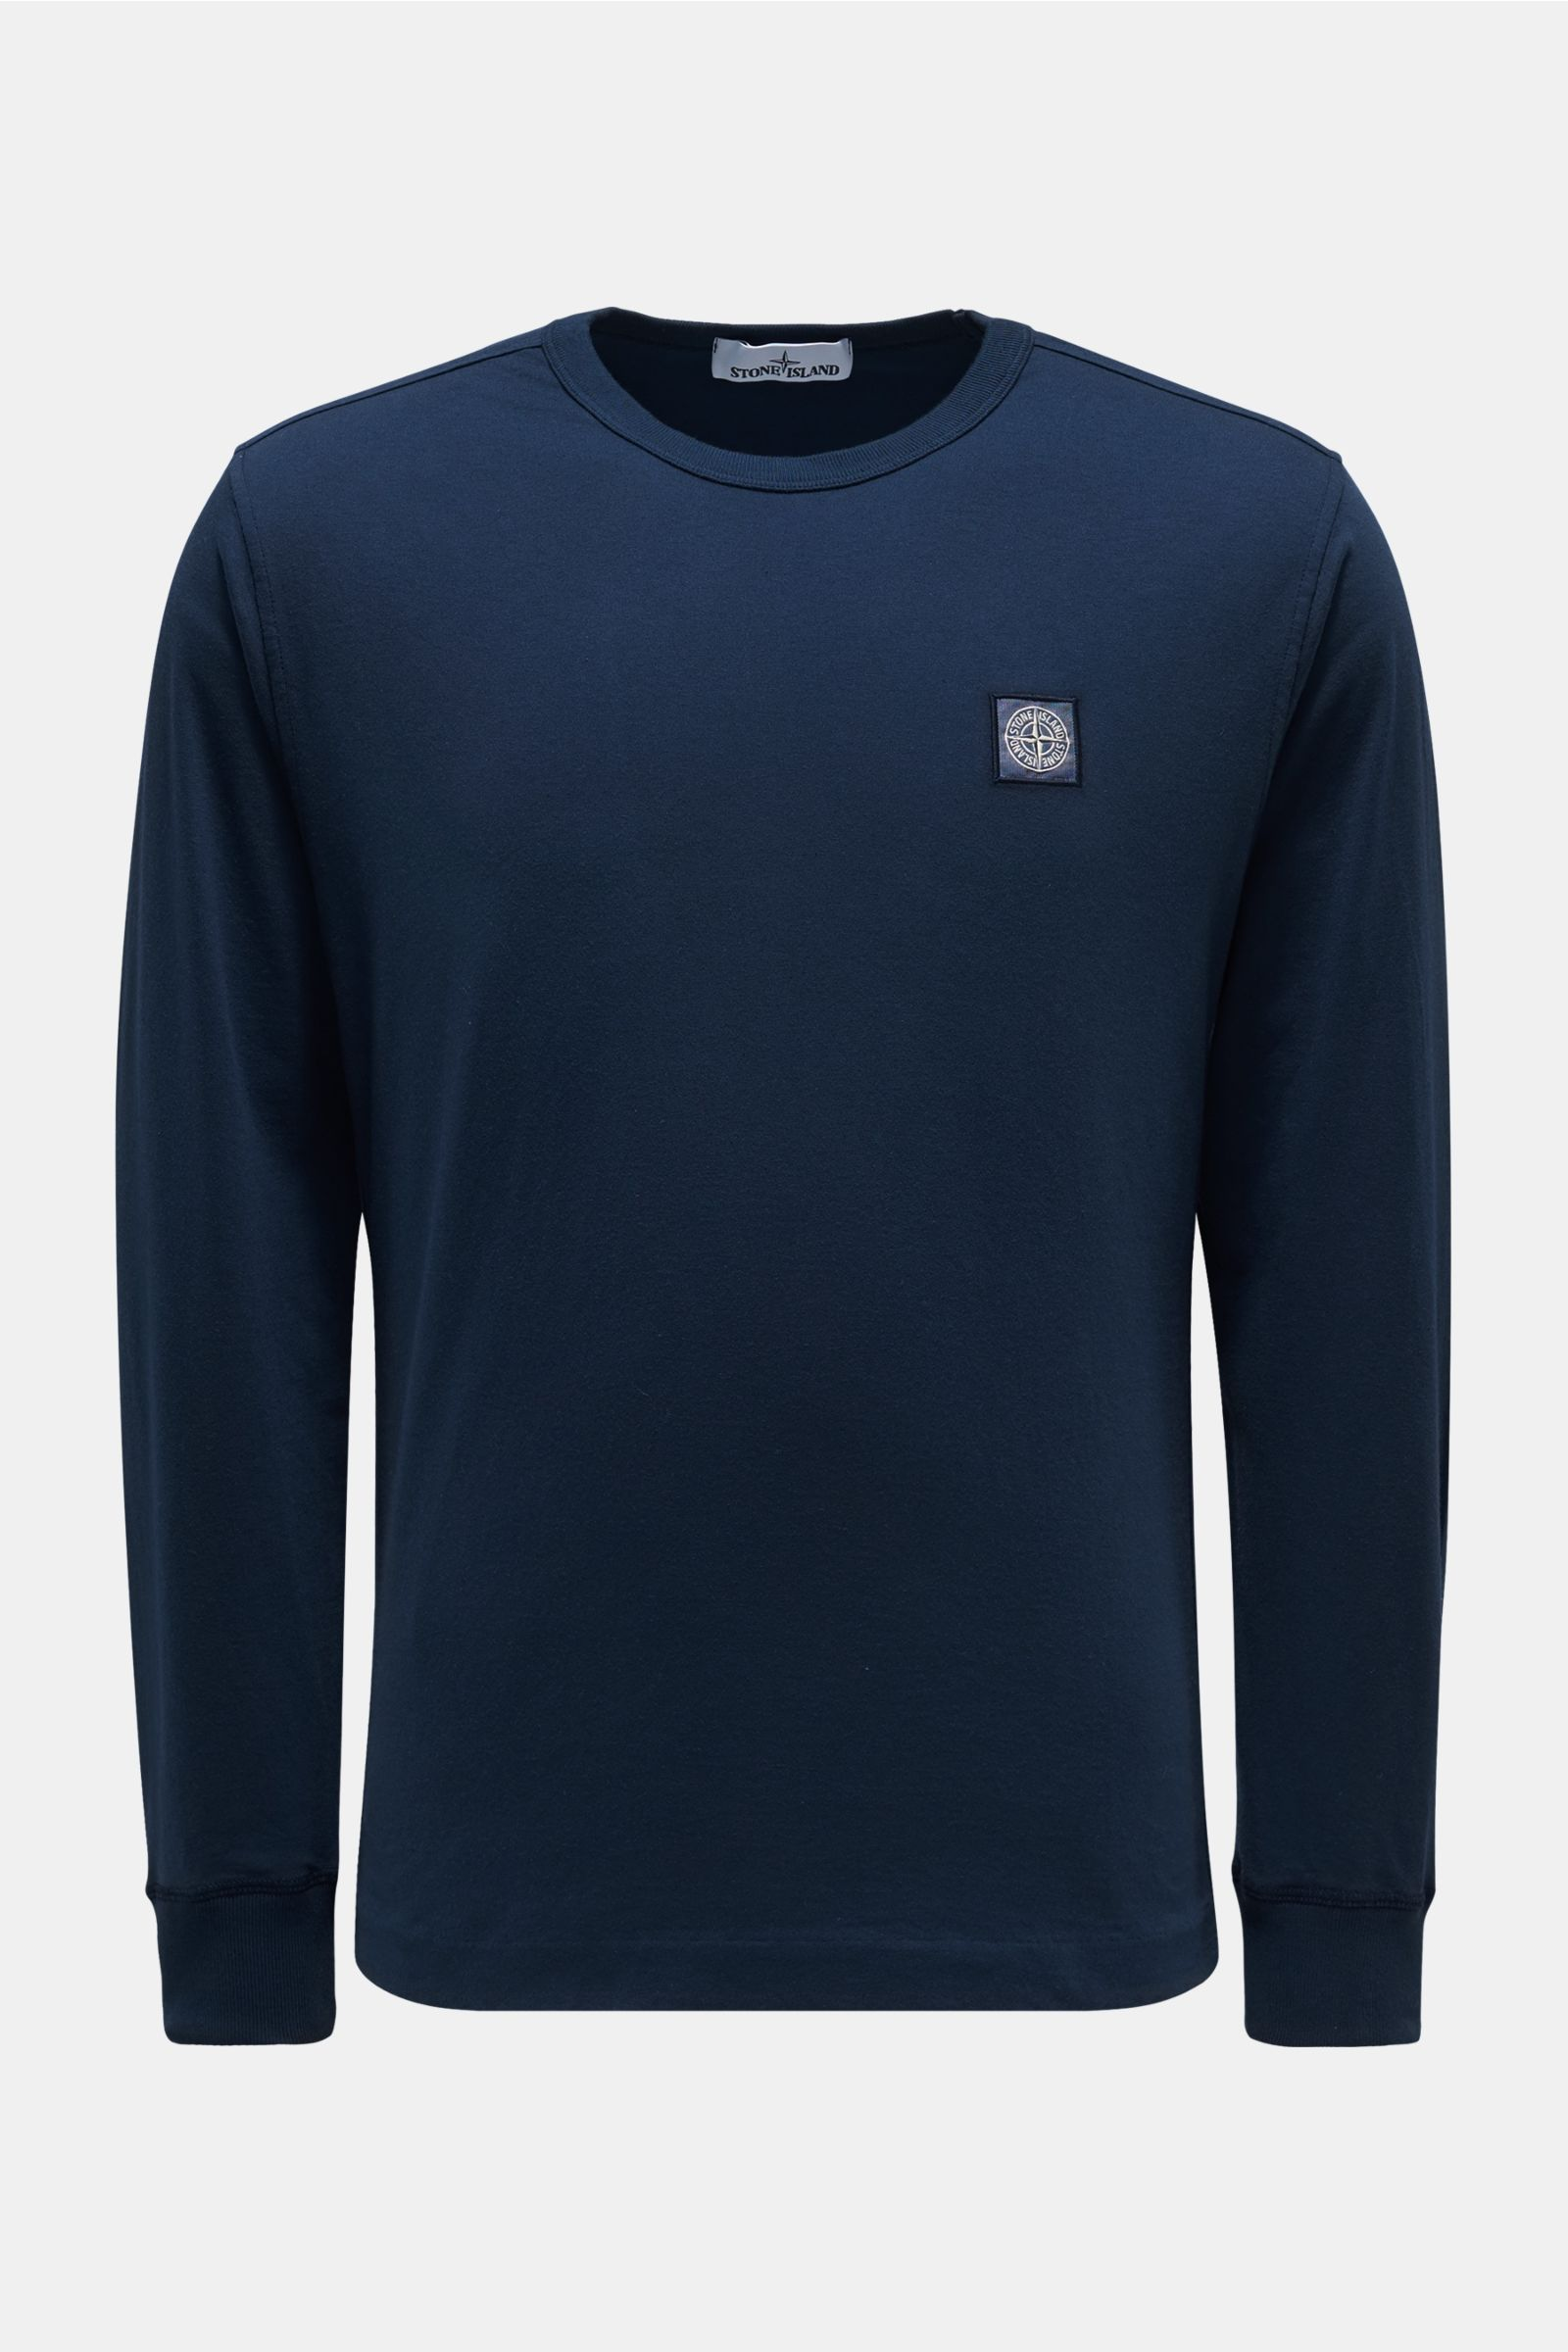 Crew neck long sleeve navy